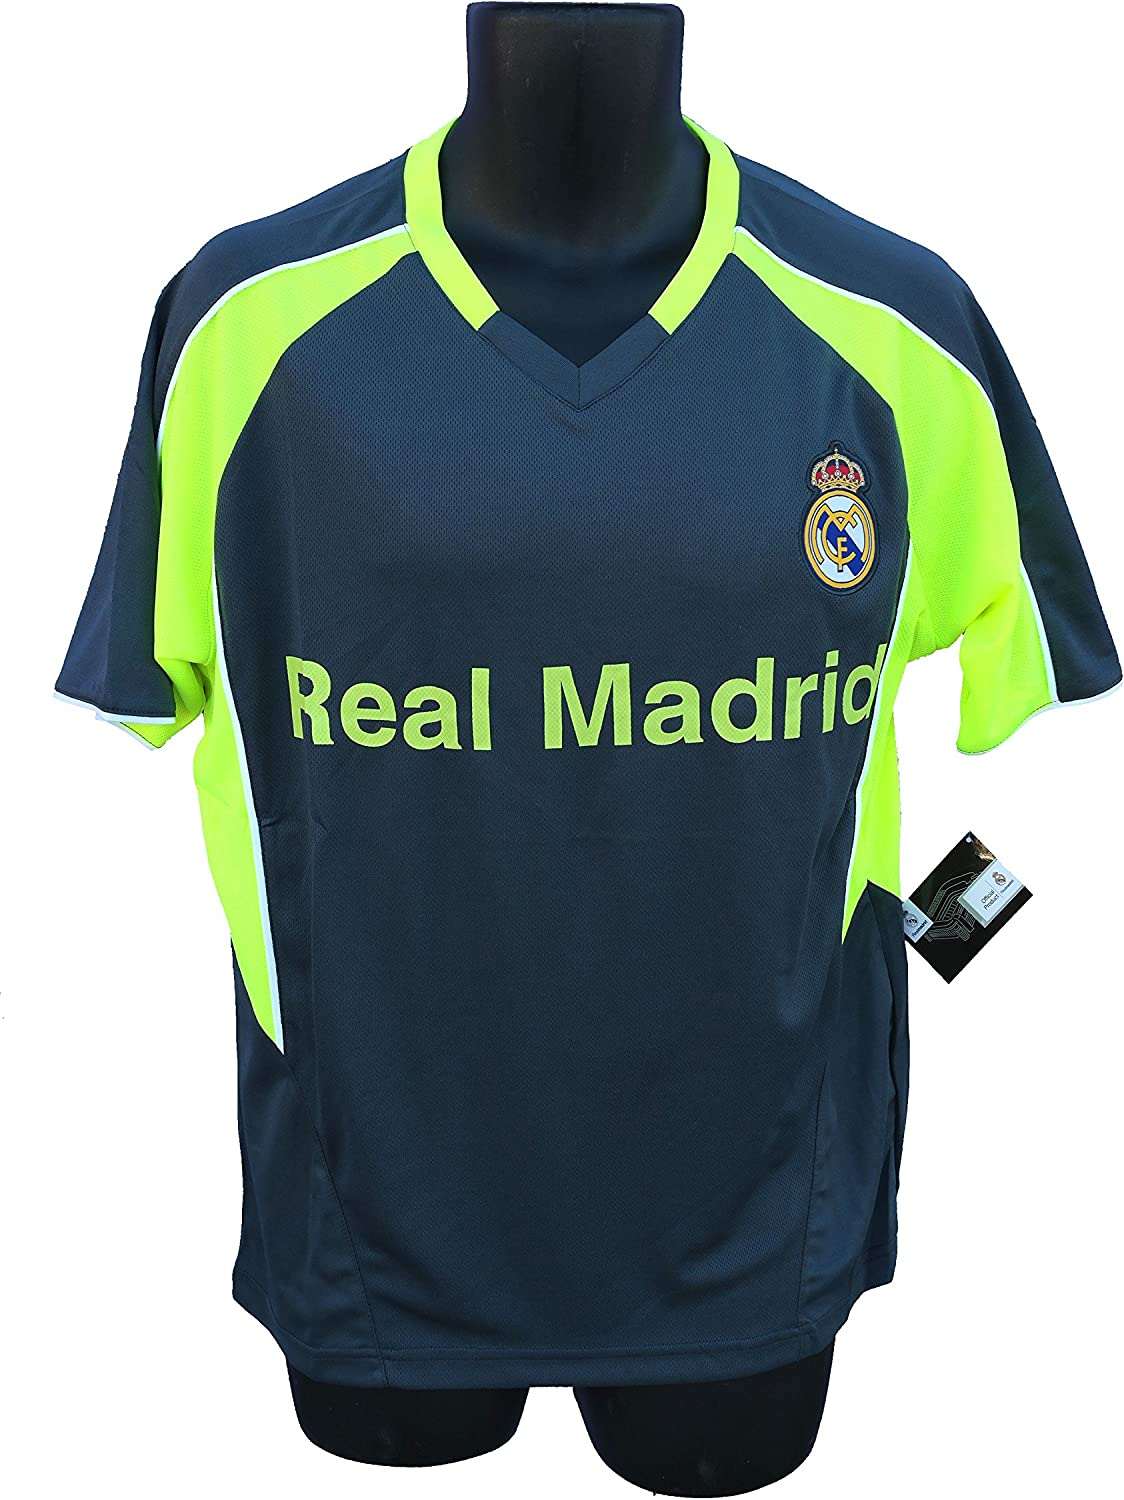 Real Madrid Soccer Official Adult Soccer Training Performance Poly Jersey P003R